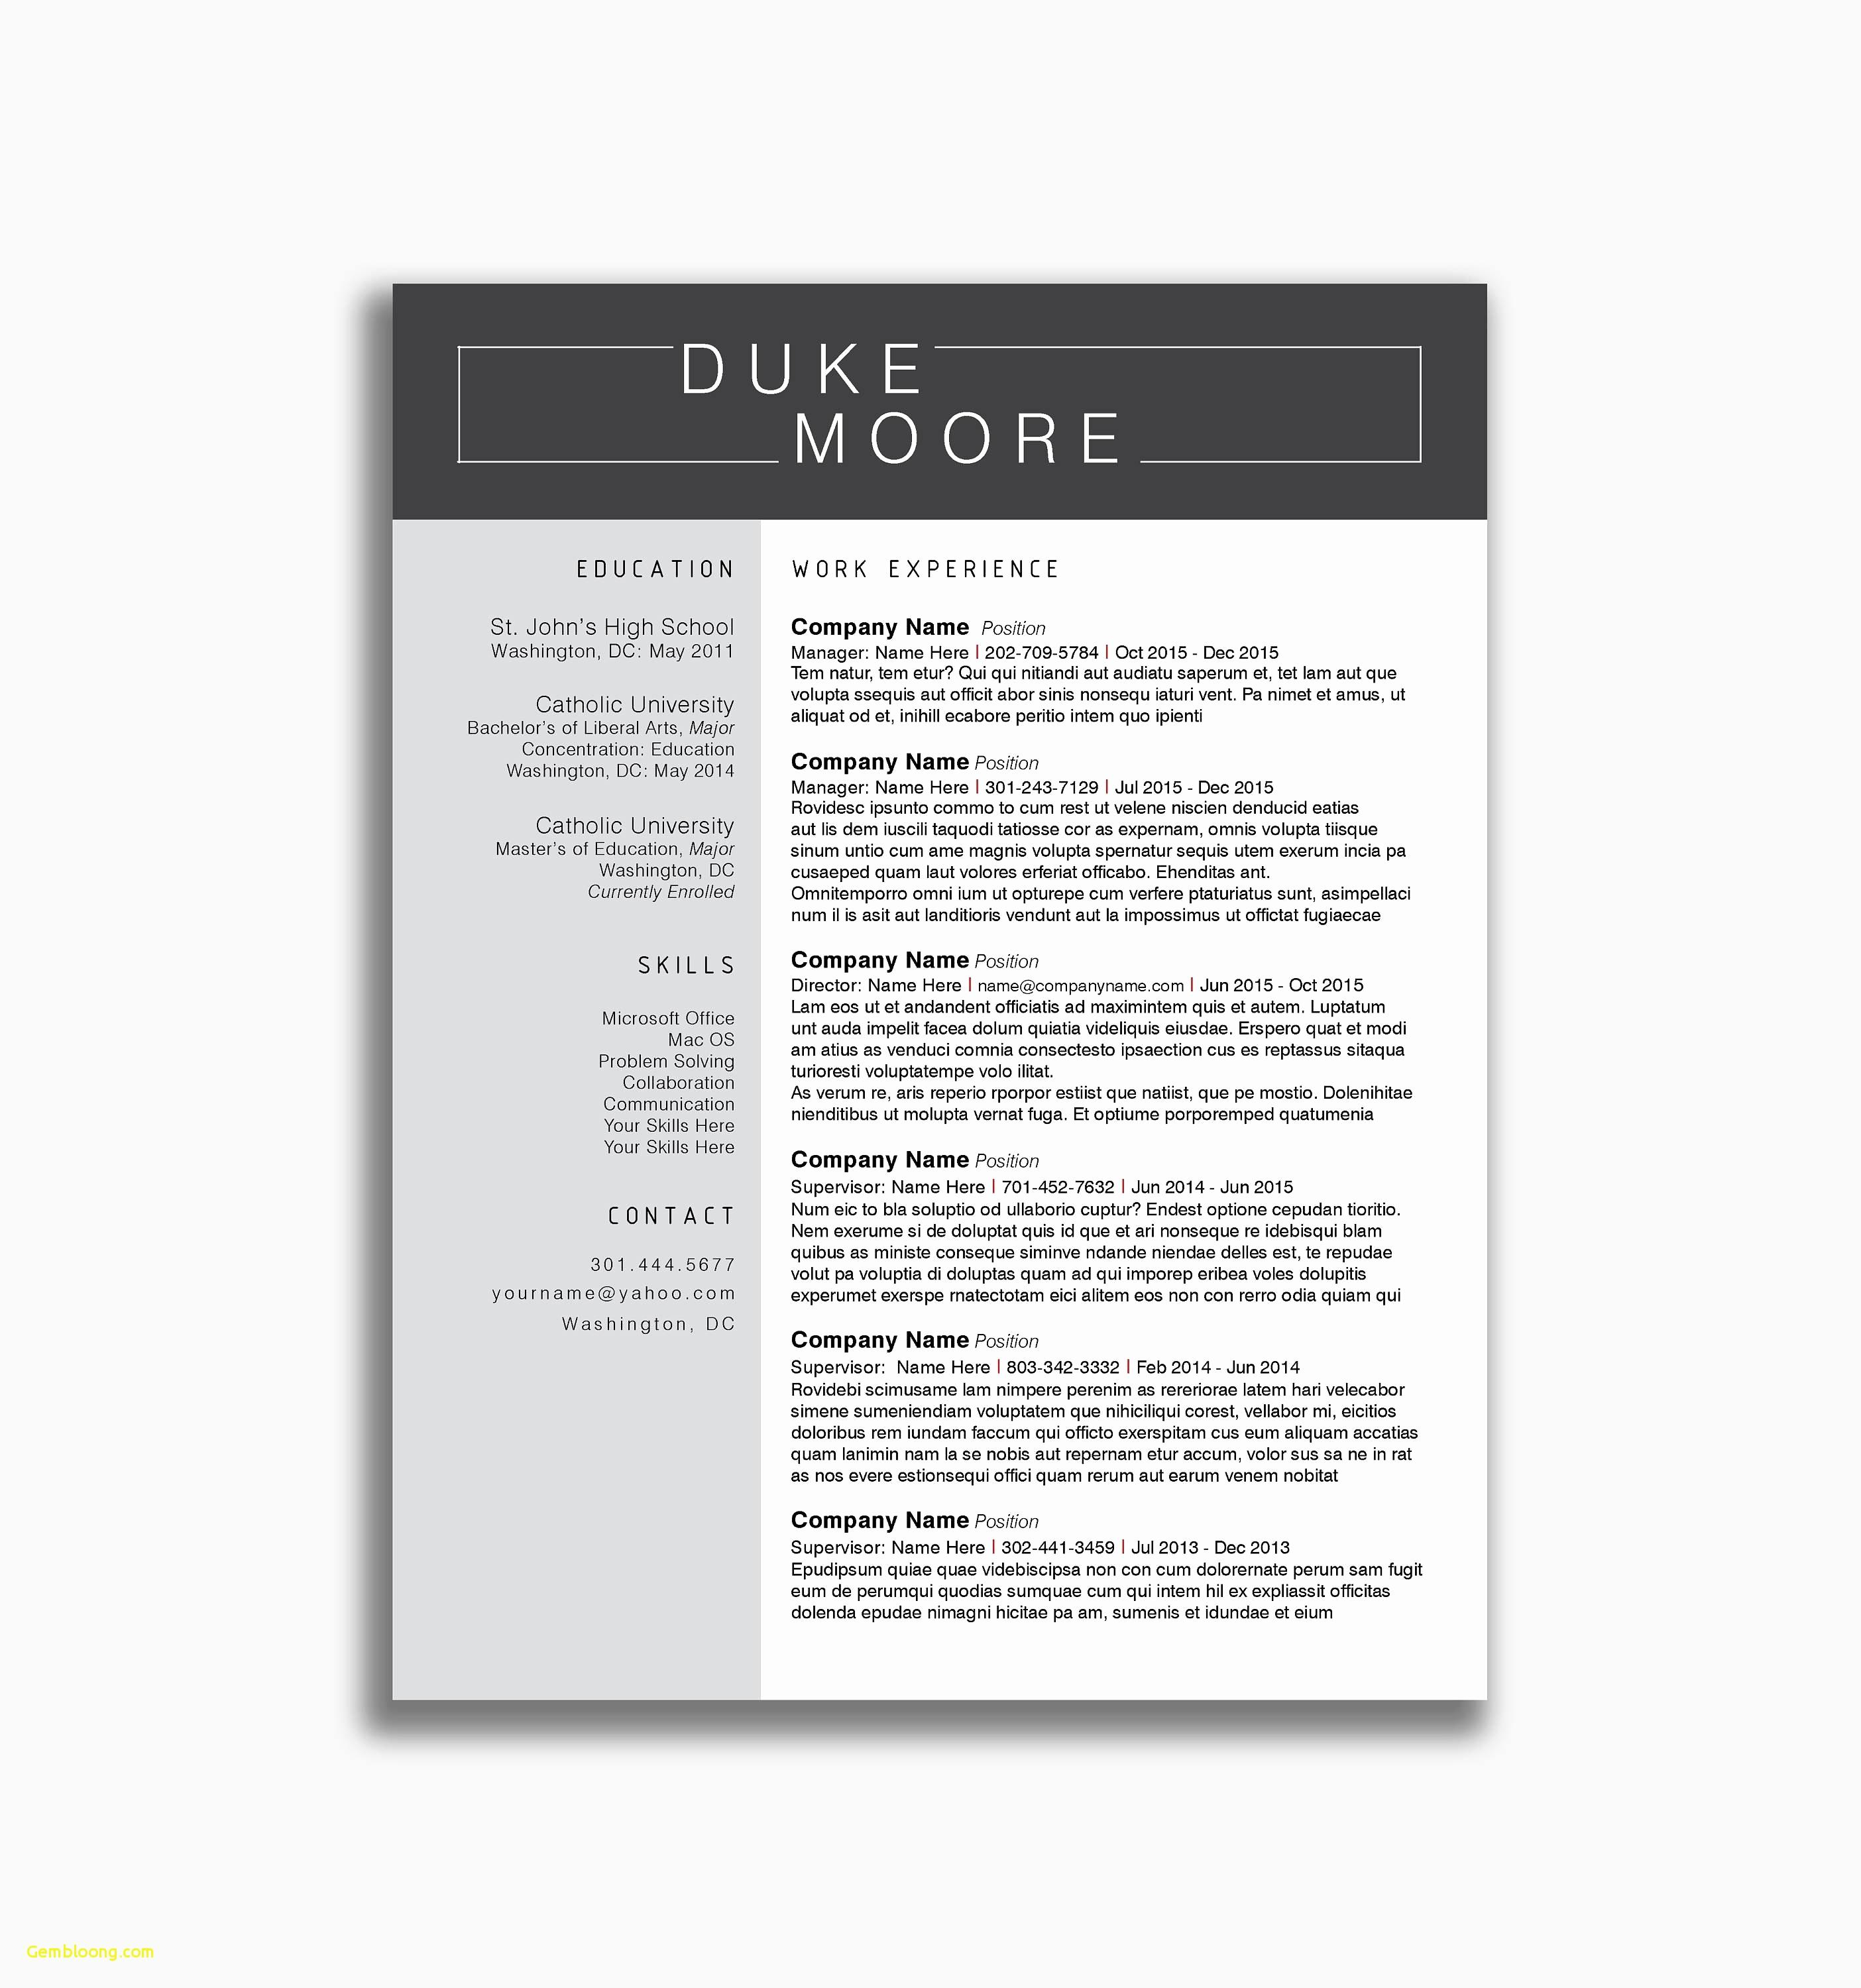 Free Template Resume Download - Download Resume Template Beautiful Law Student Resume Template Best